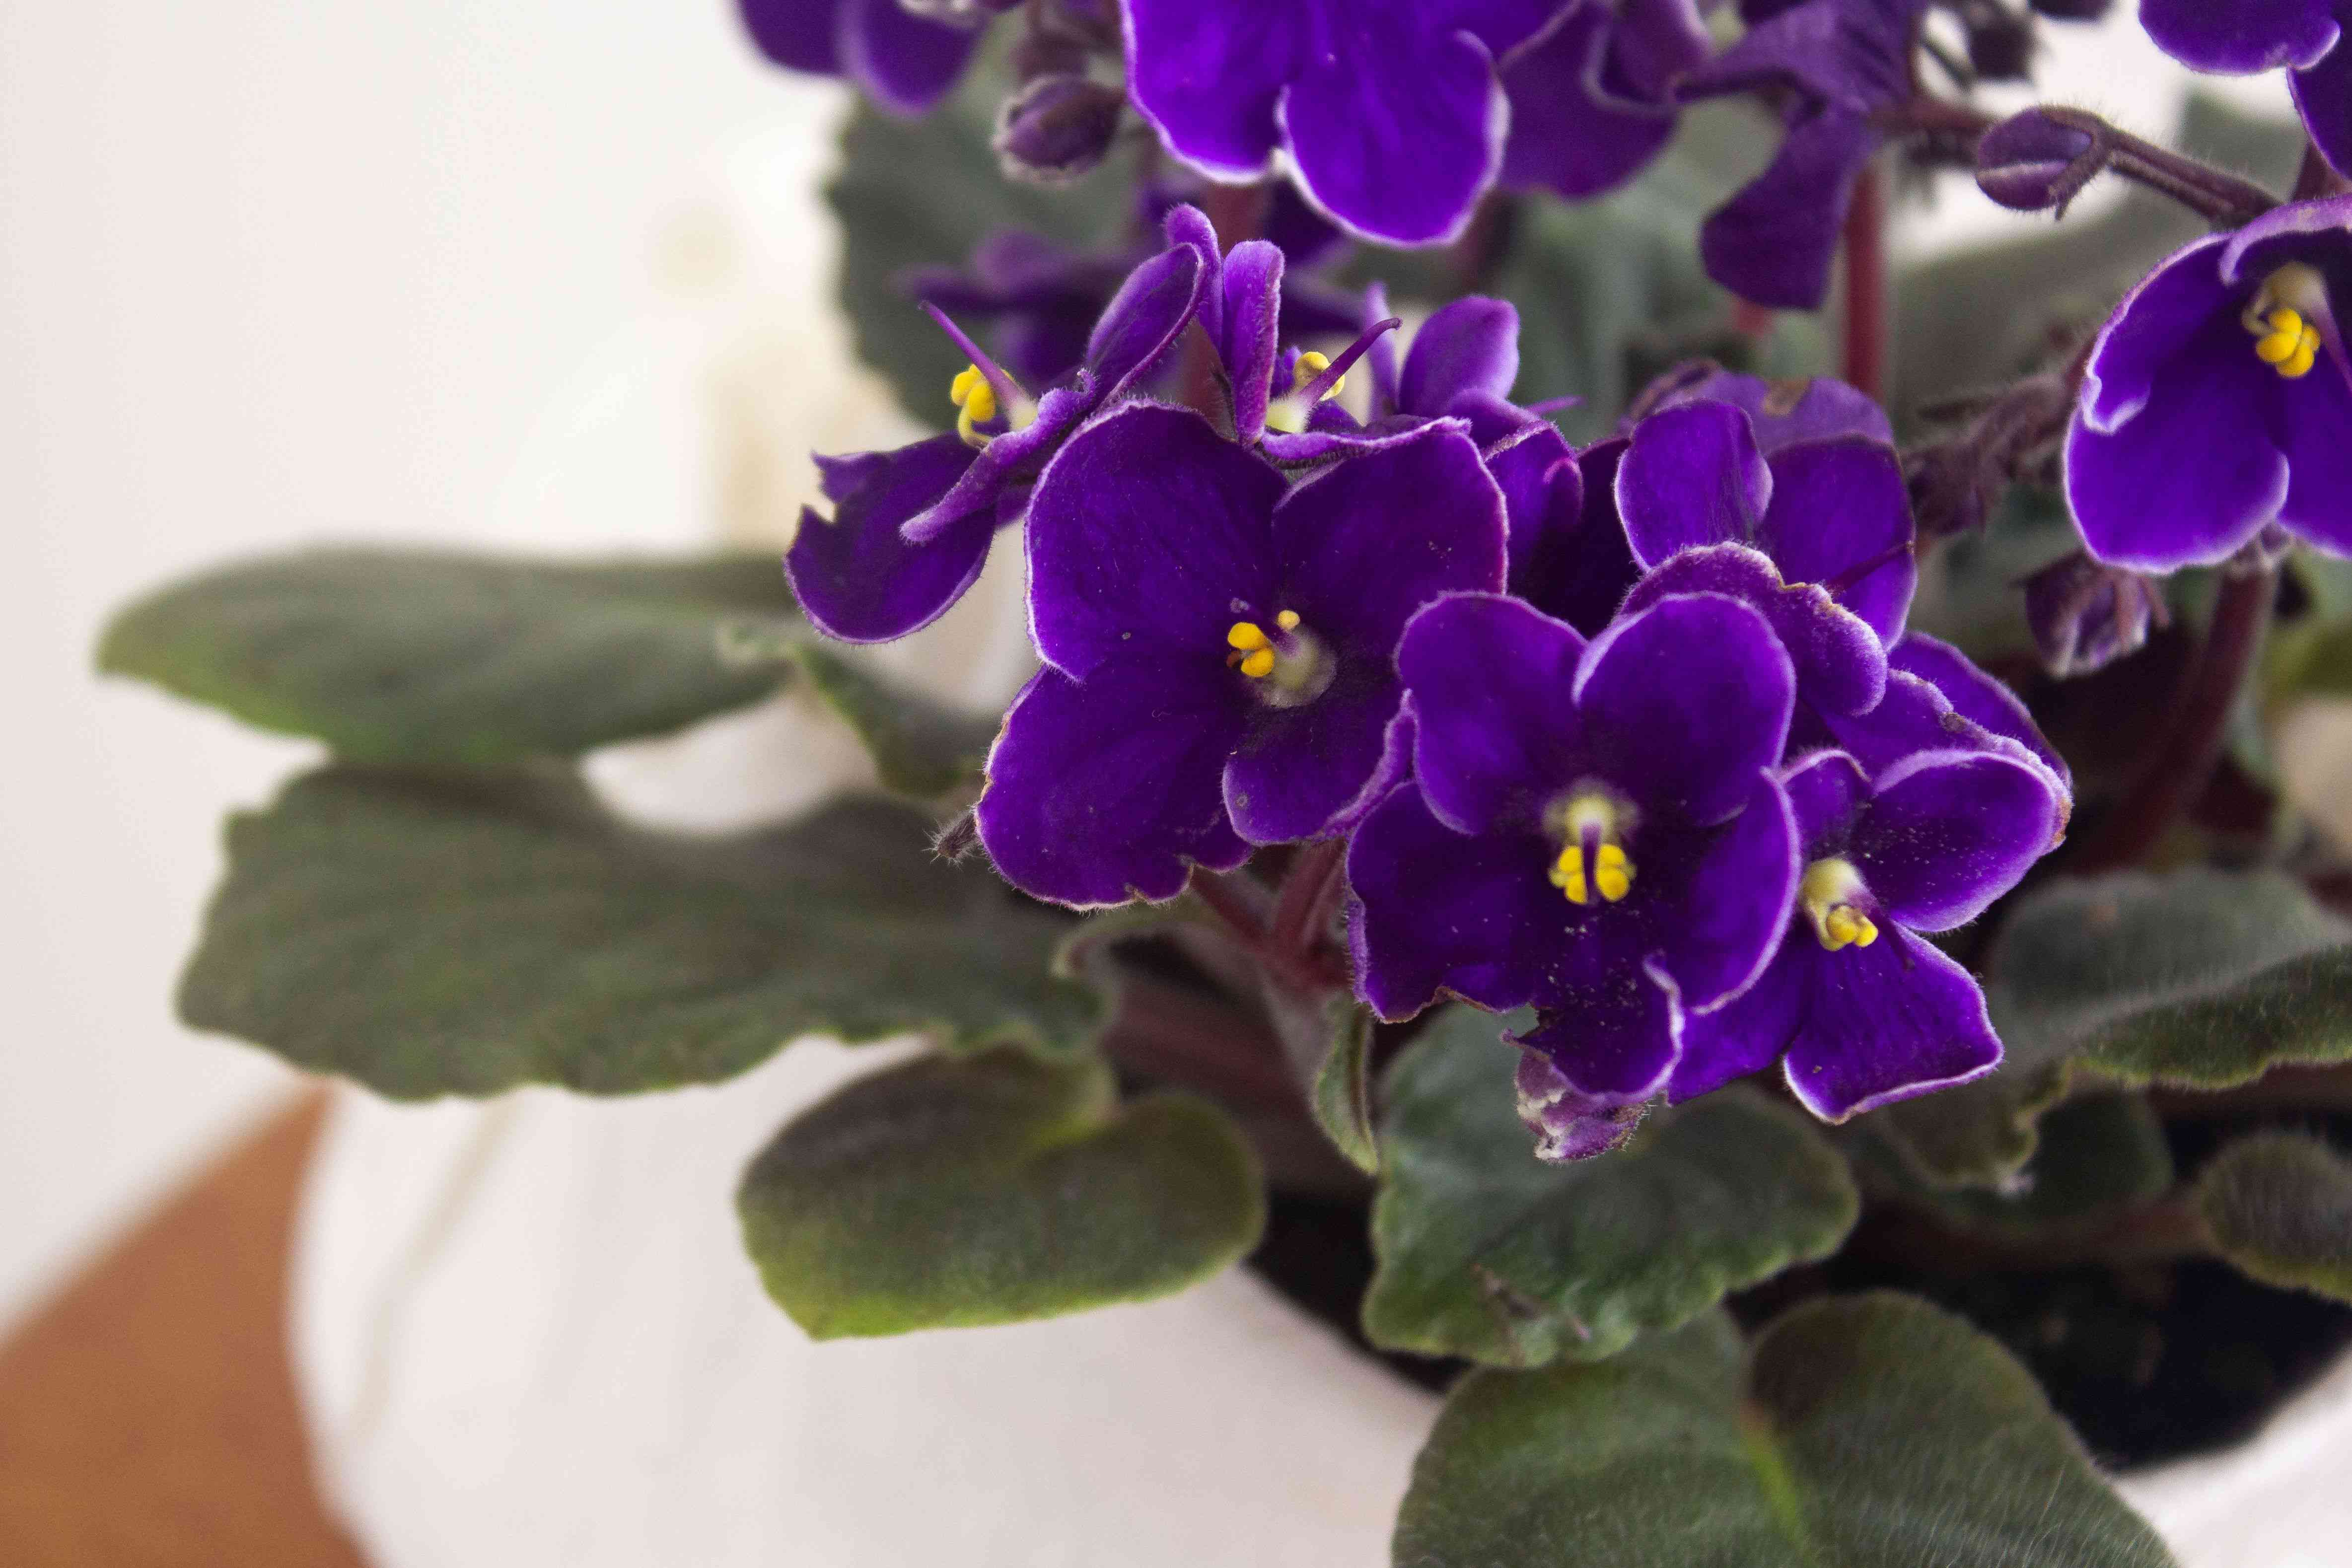 African violet houseplant with deep purple flowers and fuzzy leaves closeup